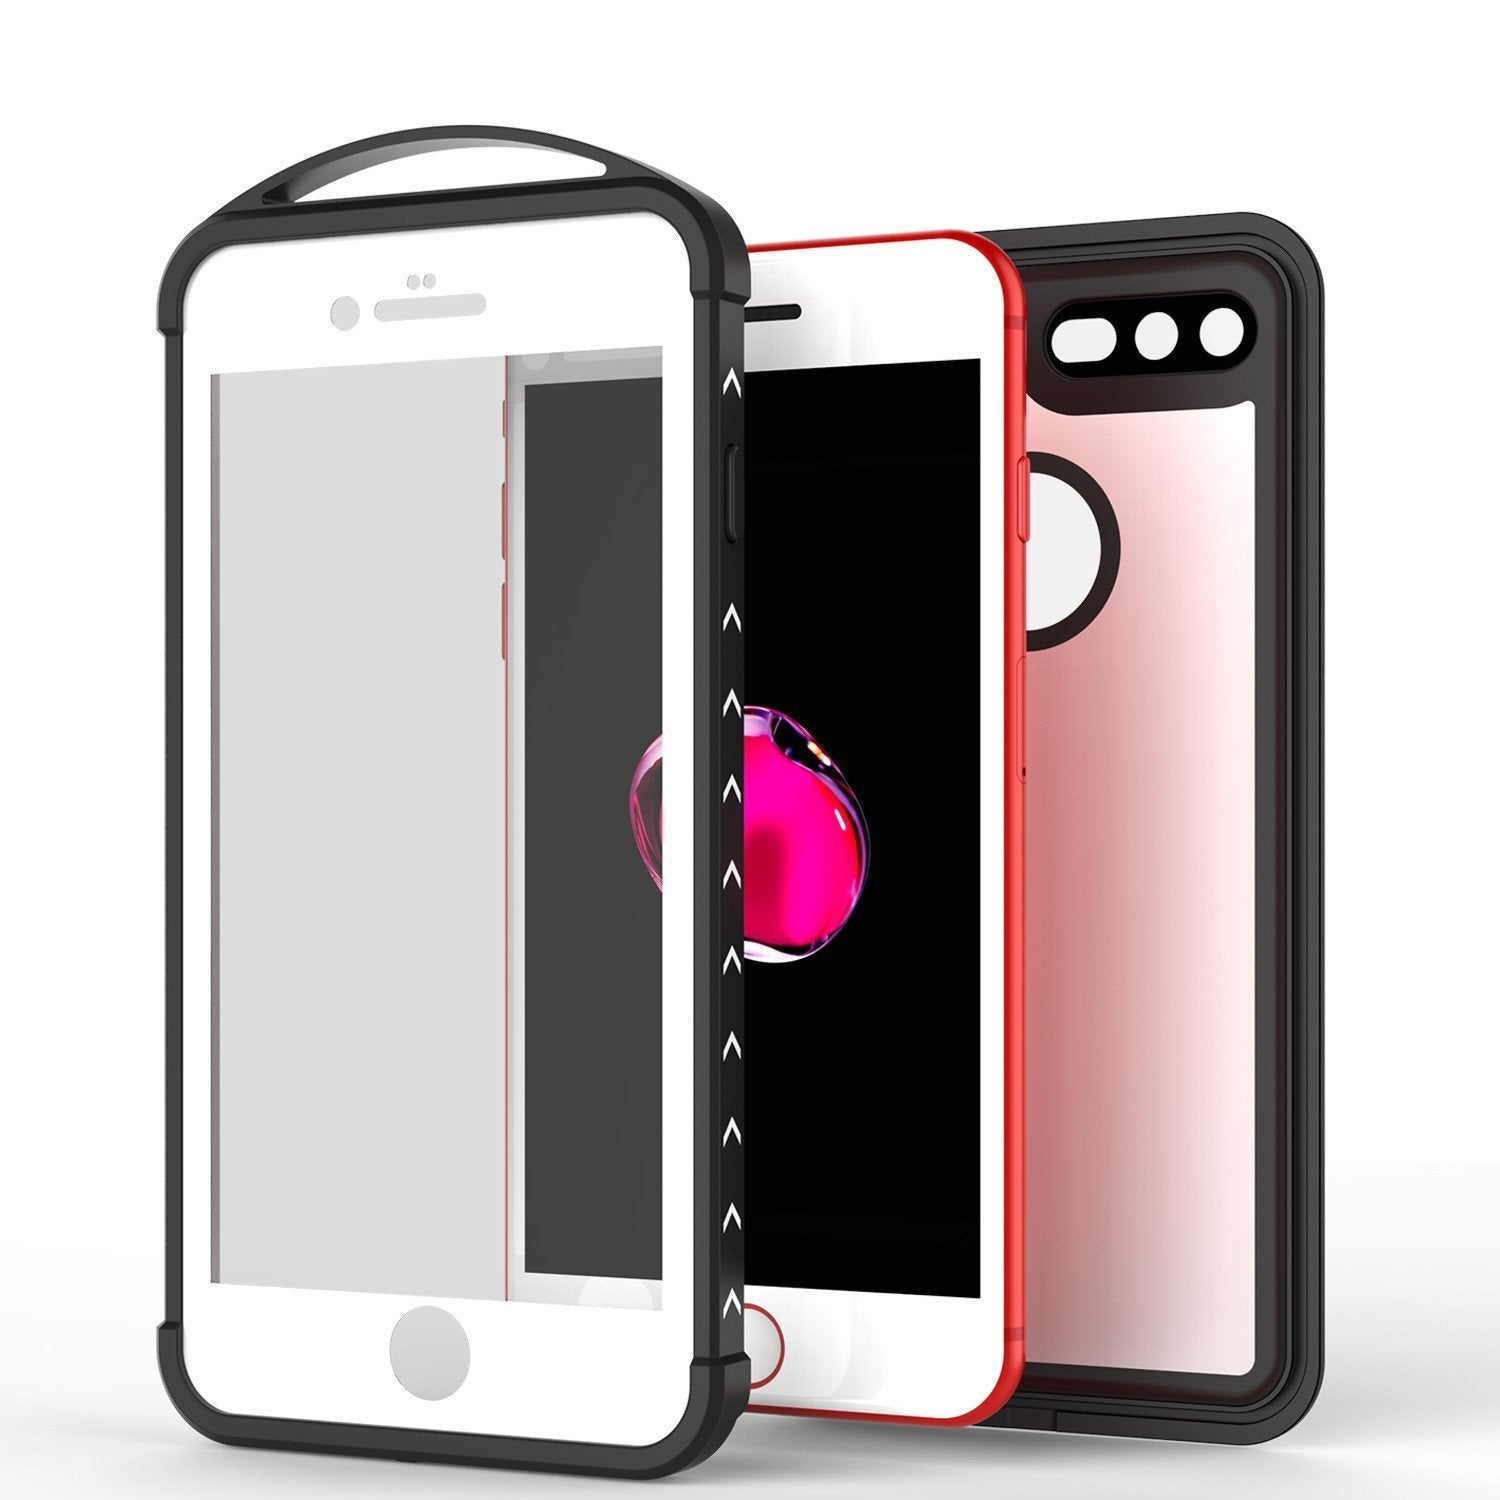 iPhone 8+ Plus Waterproof Case, Punkcase ALPINE Series, White | Heavy Duty Armor Cover